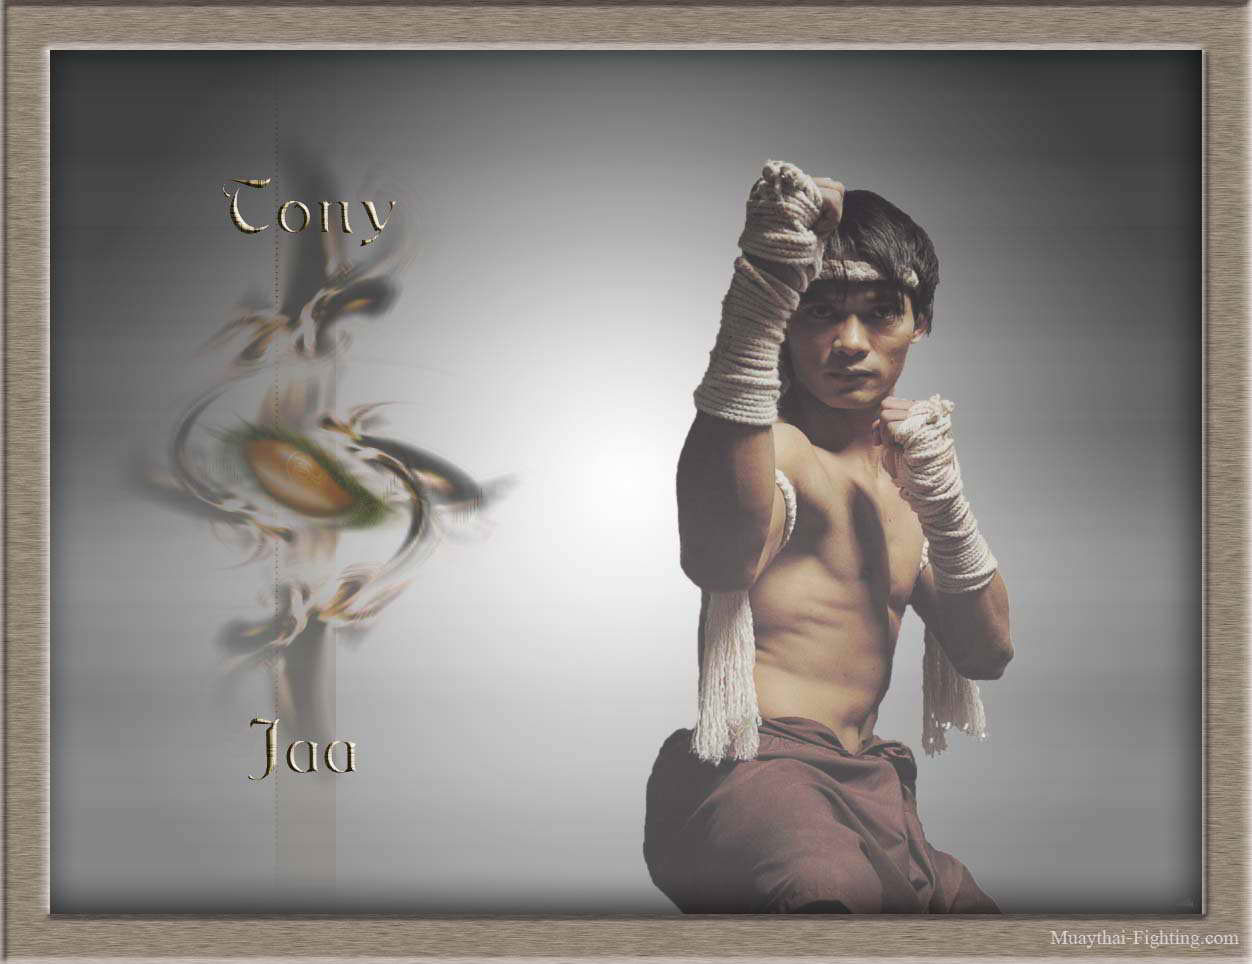 Jaa Delightful courtney baird: tony jaa hd